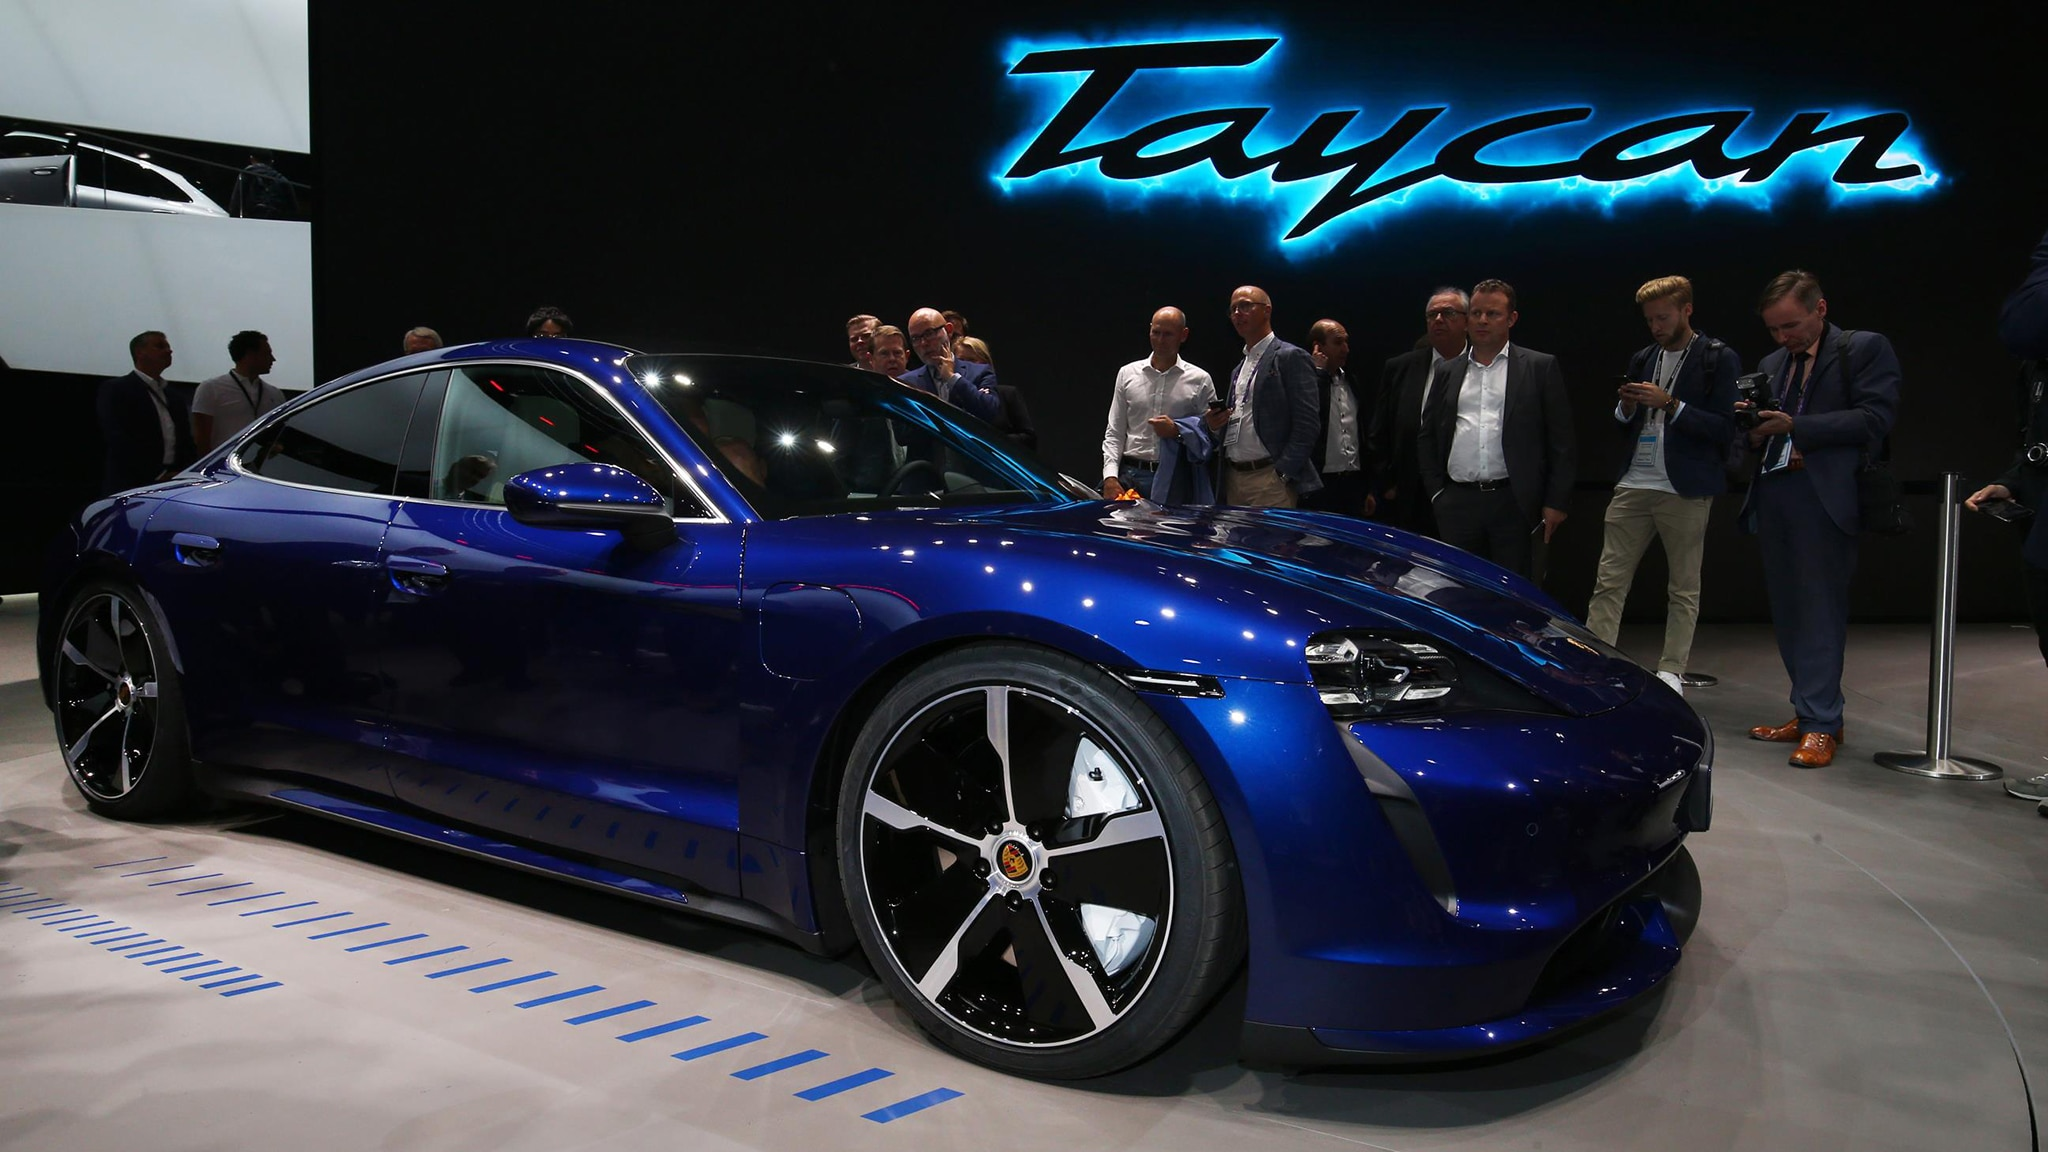 Porsche Taycan Debut Impressions From The 2019 Frankfurt